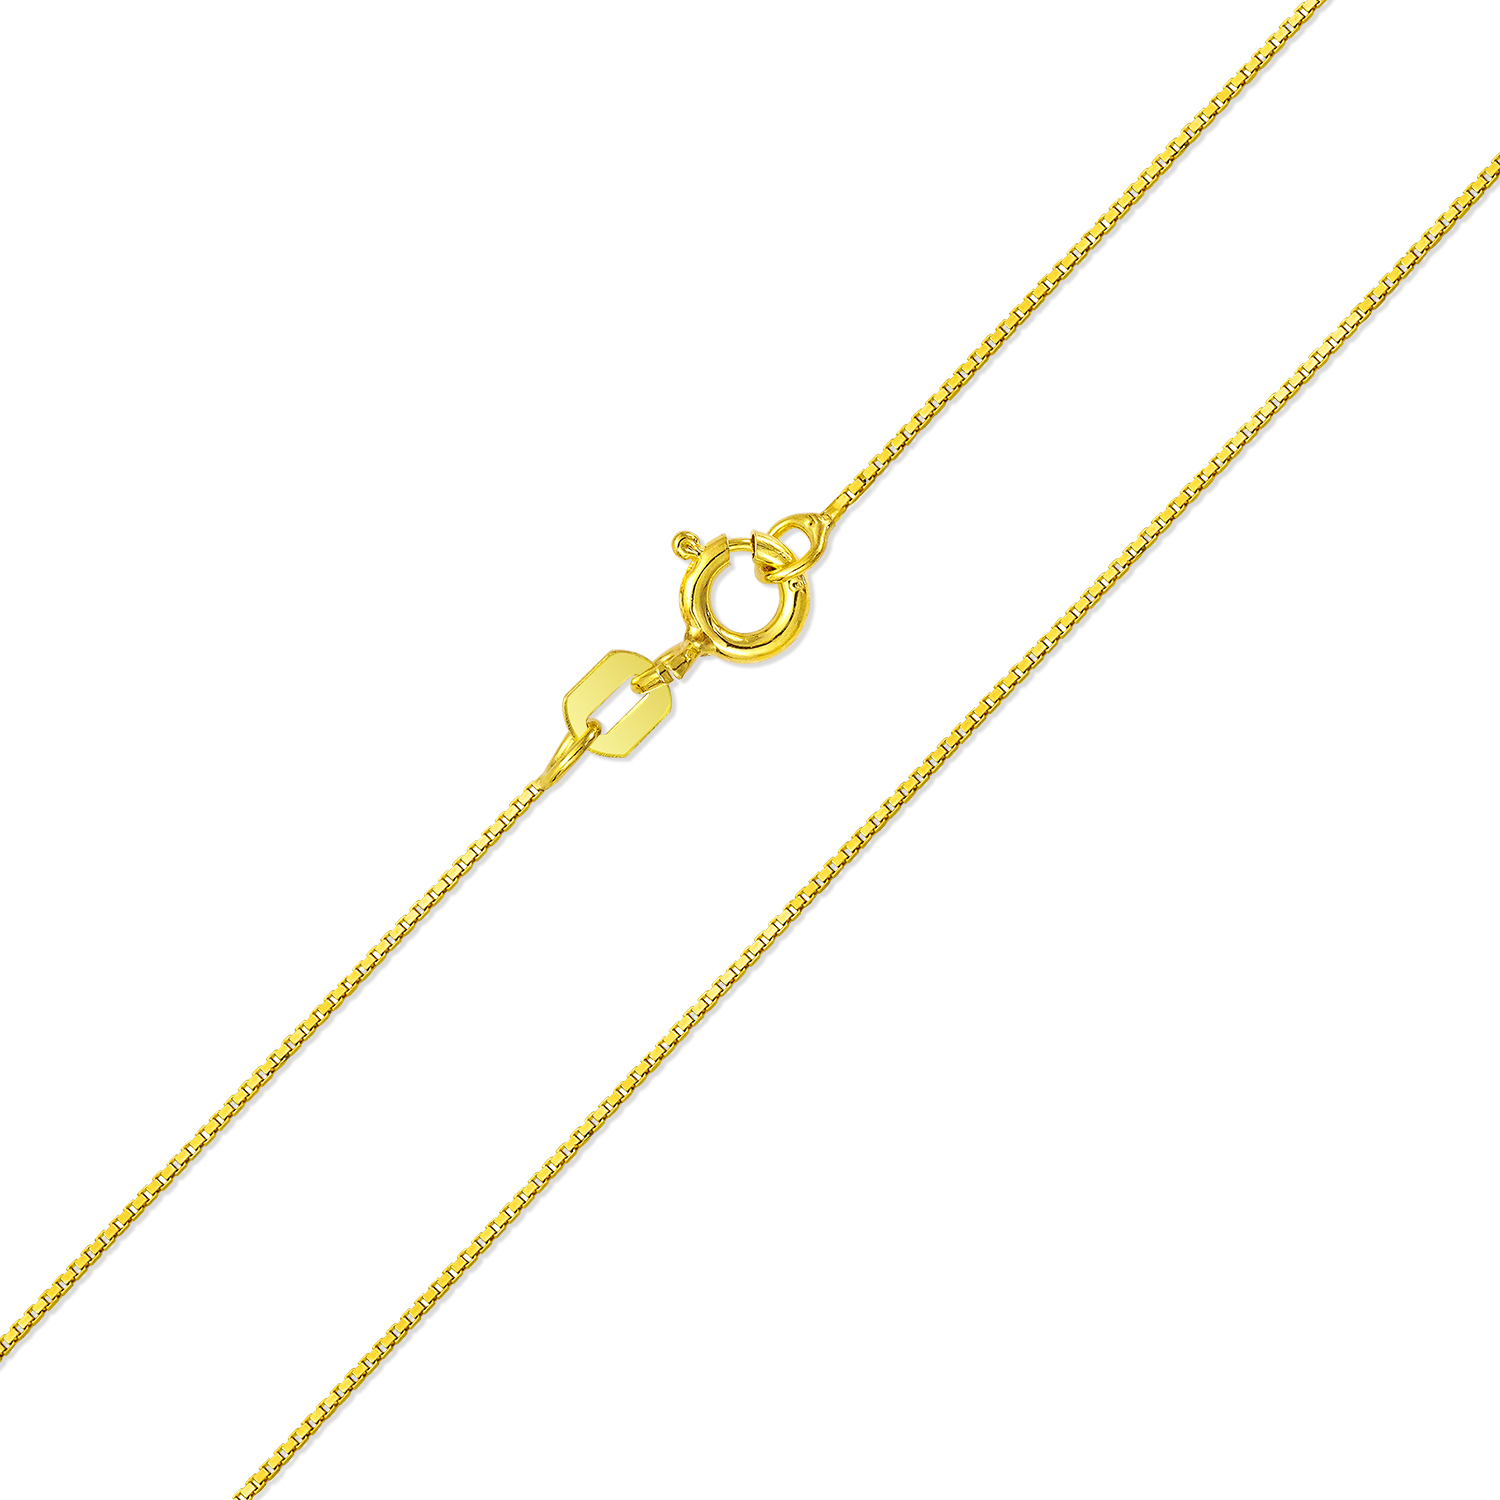 18k Necklace Box Chain in White Gold Yellow Gold Choice of Lengths 16 18 20 24 and 0.5mm